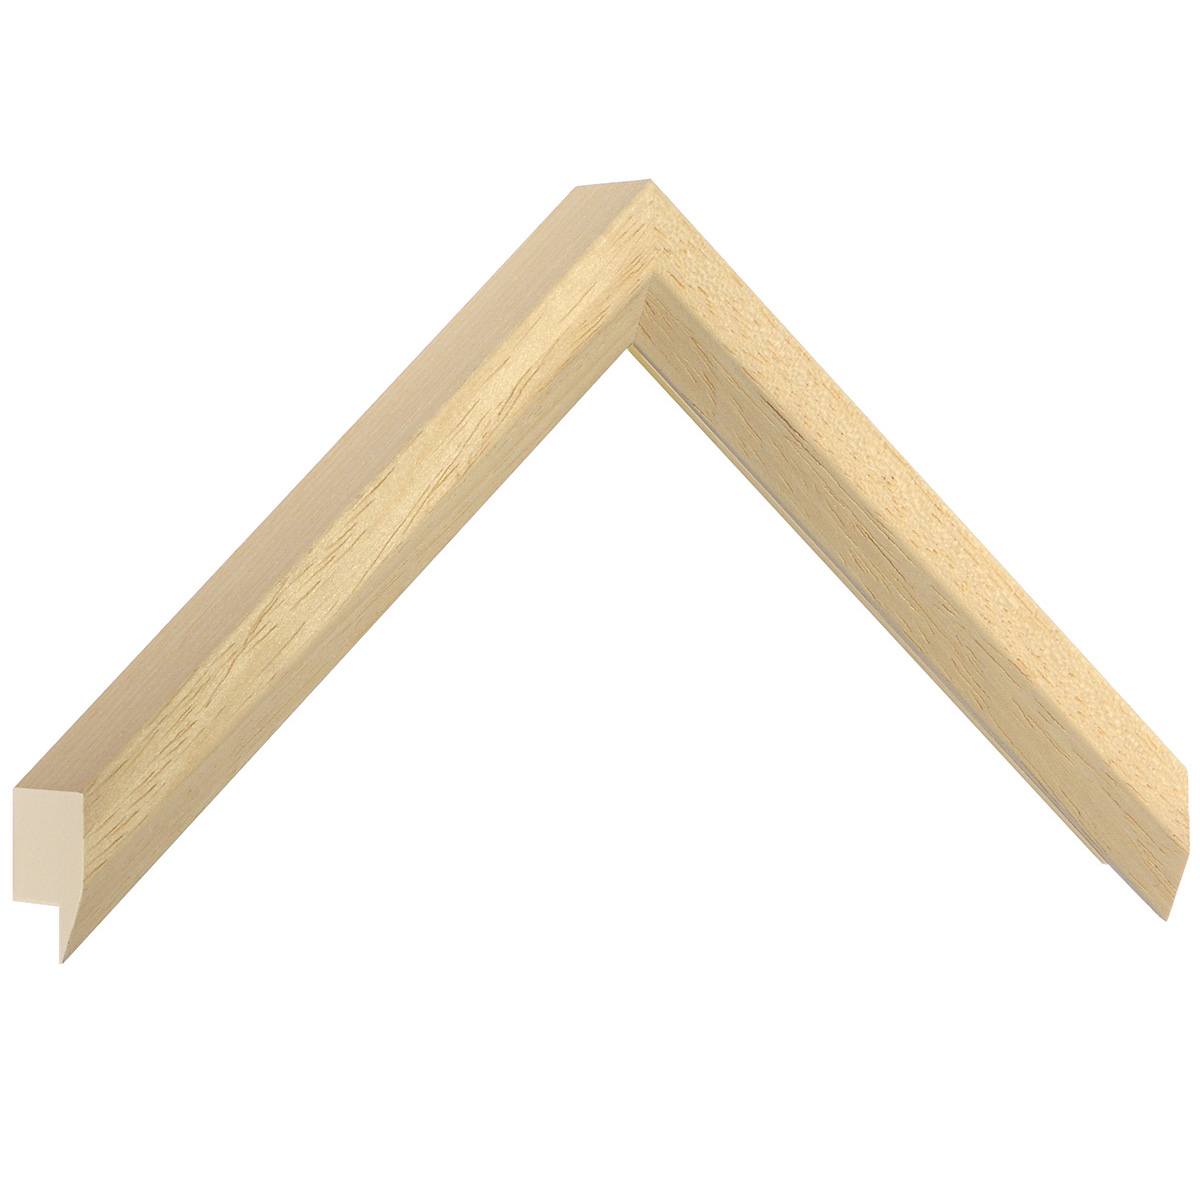 Moulding ayous, width 27mm, height 35mm, bare timber